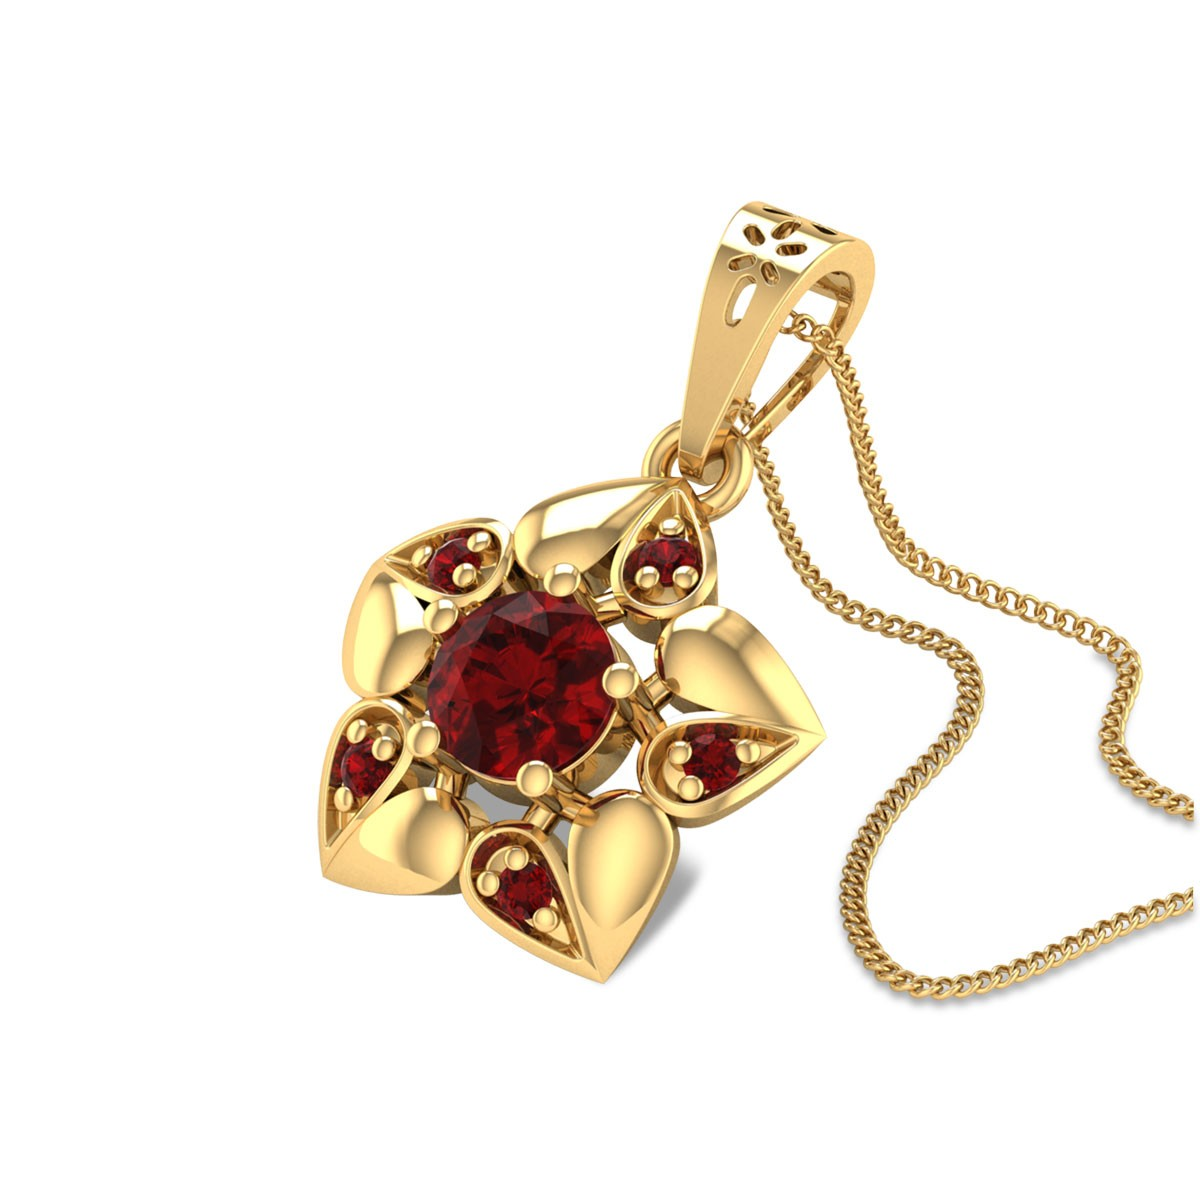 Hesperus Ruby Floral Pendant